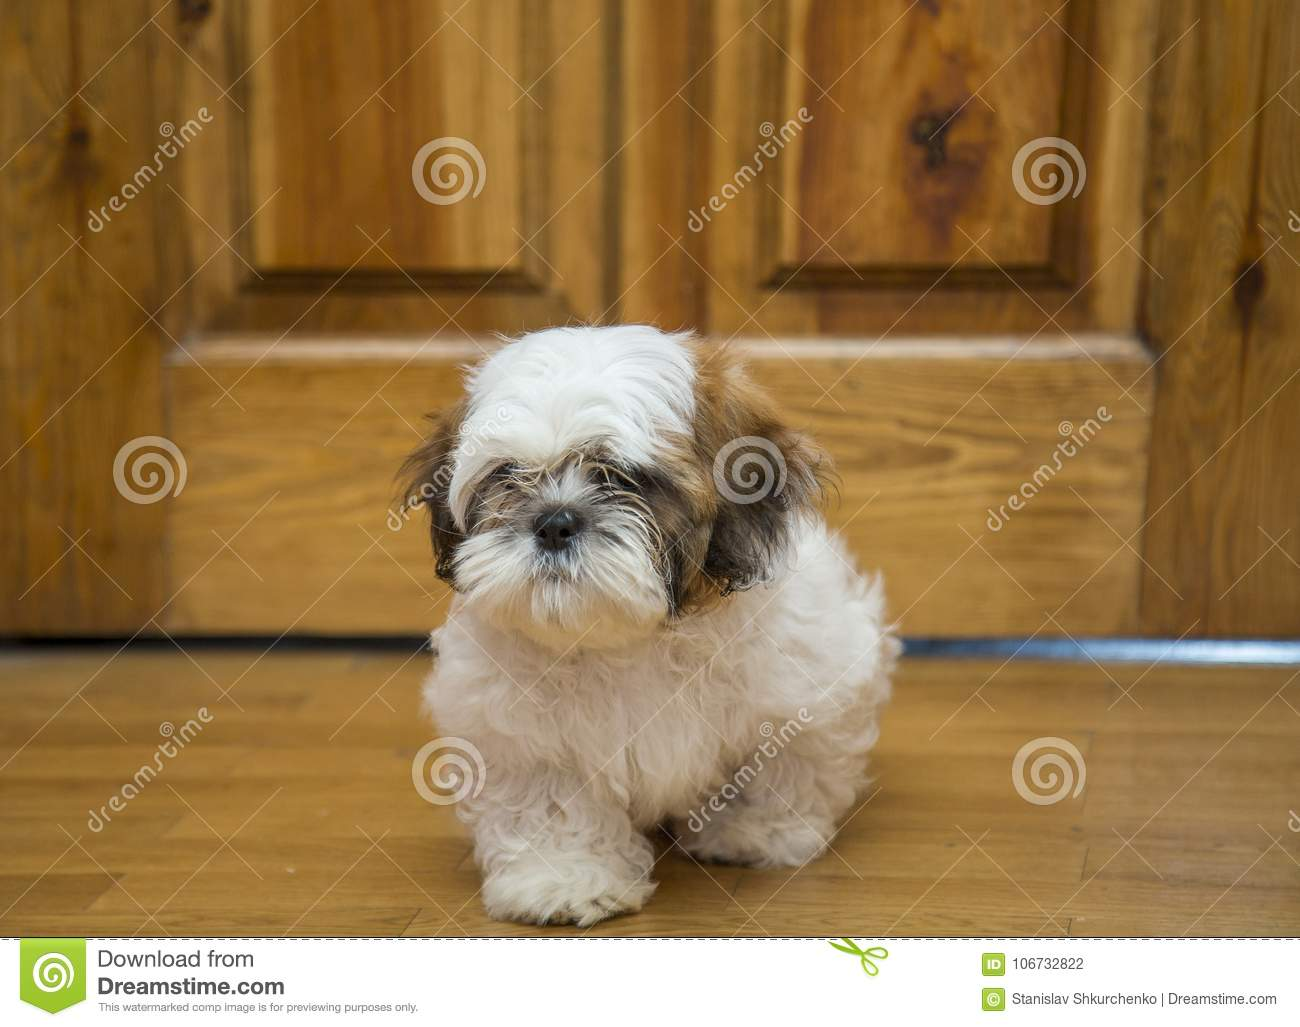 Shih Tzu Puppy Breed Tiny Dog Age 6 Month Playfulness Loveliness Stock Photo Image Of Purebred Young 106732822